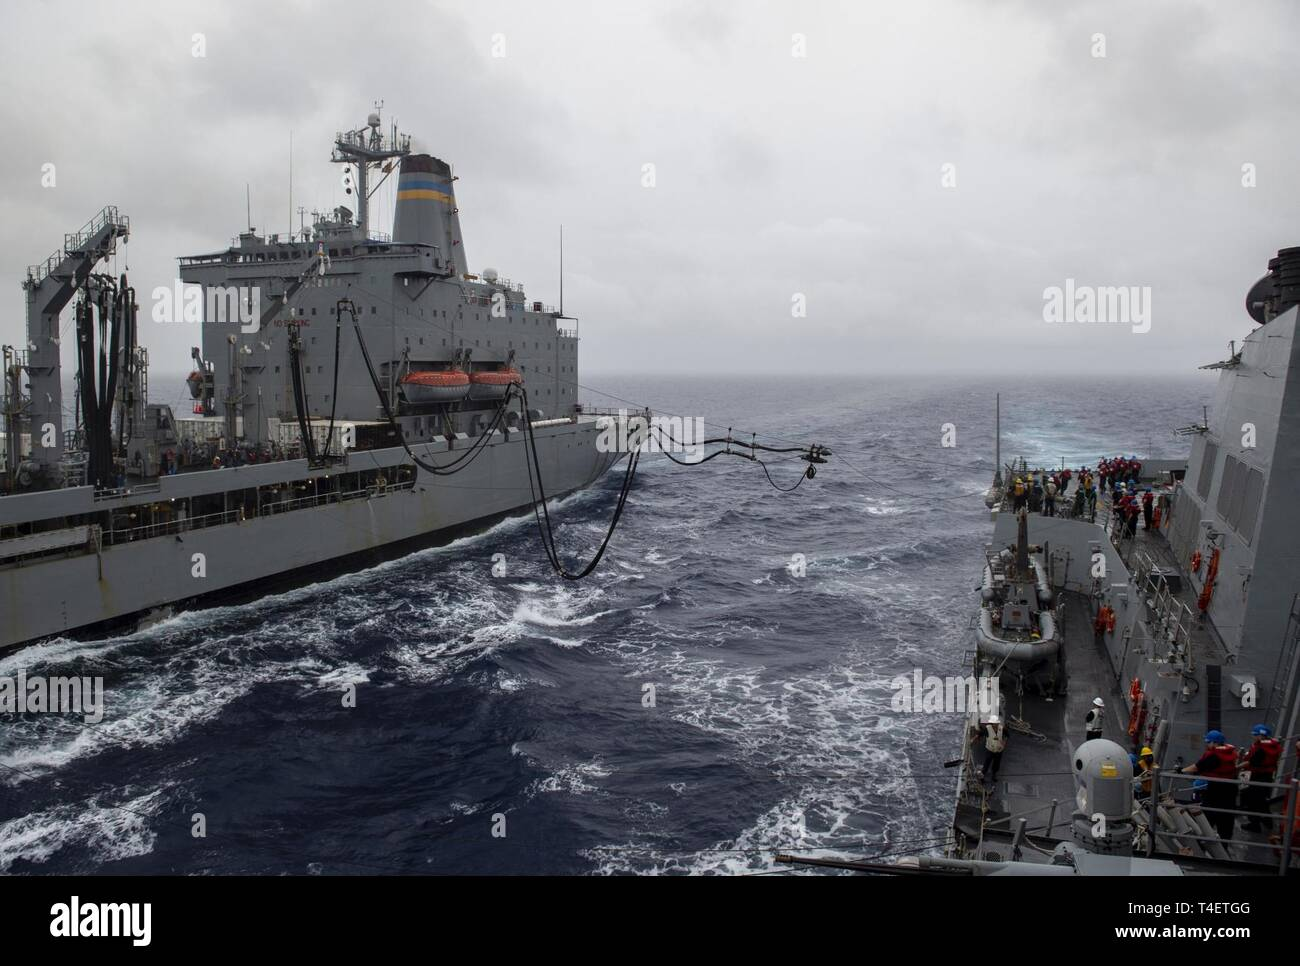 SOUTH CHINA SEA (April 03, 2019) The Arleigh Burke-class guided-missile destroyer USS Preble (DDG 88) receives a fueling probe from the Military Sealift Command fleet replenishment oiler USNS Guadalupe (T-AO 200) during a replenishment-at-sea. Preble is deployed to the U.S 7th Fleet area of operations in support of security and stability in the Indo-Pacific region. - Stock Image